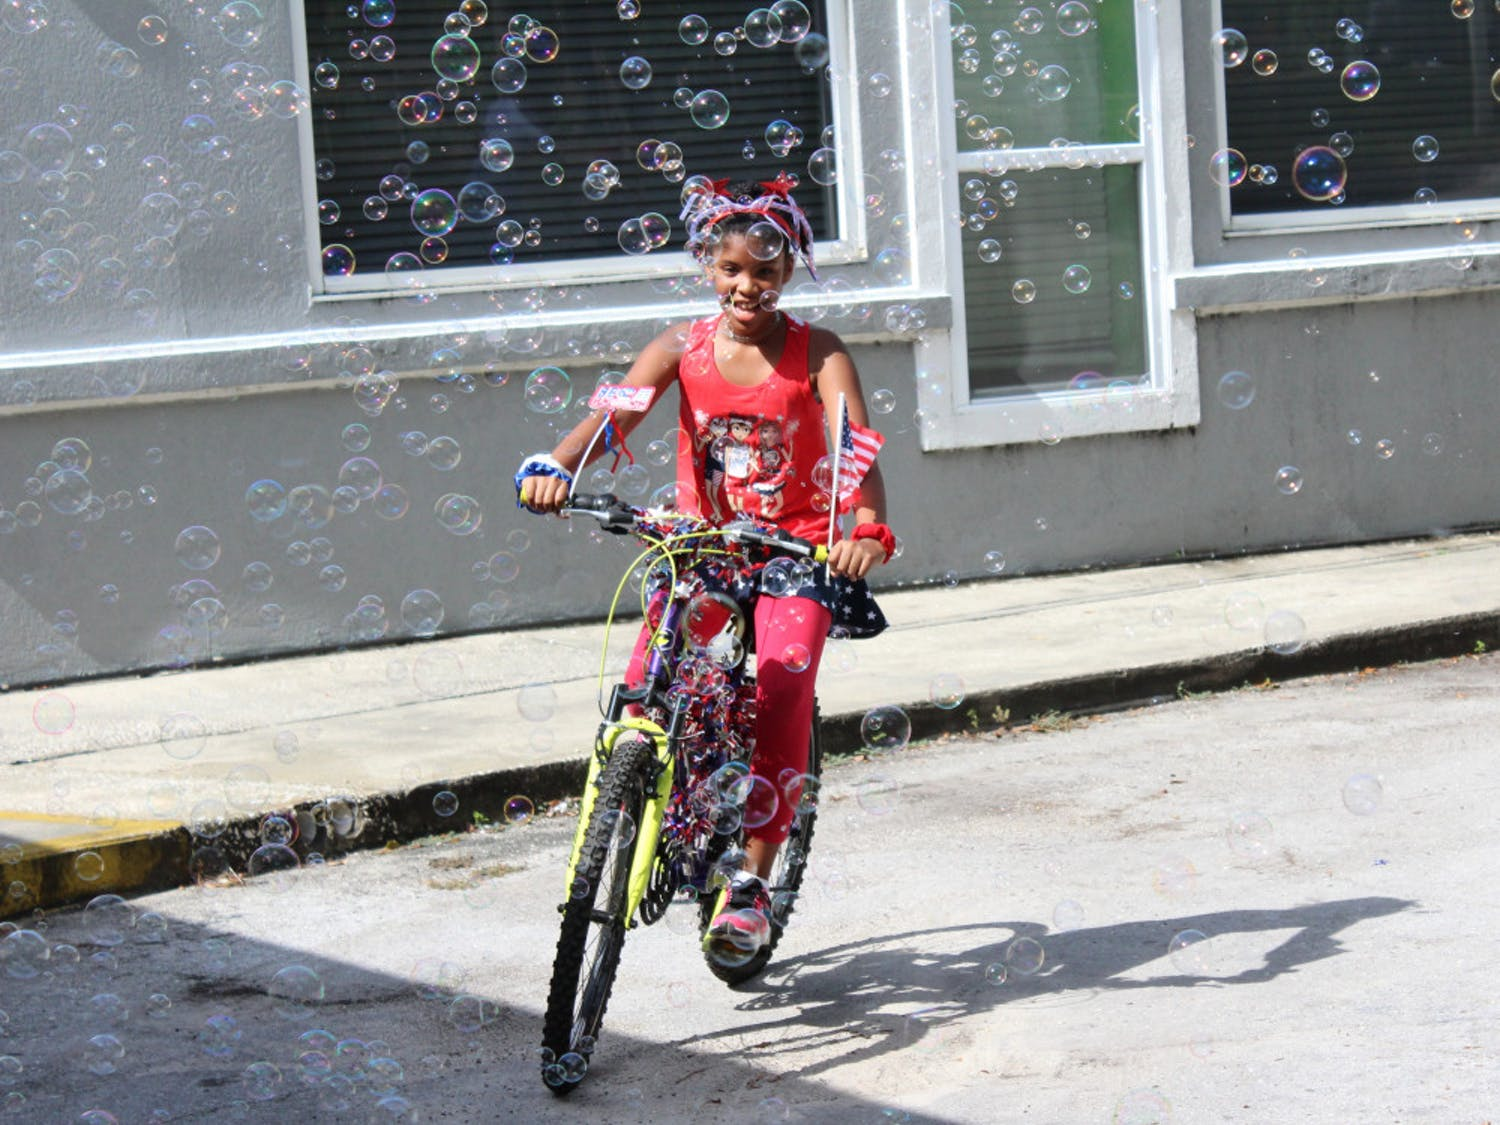 """Bouncers held its second annual Fourth of July Bicycle Parade with a turnout of less than a tenth of what it was in 2019. A year prior, 100 kids attended. This year, only eight came to ride their bicycles, tricycles, and scooters around the parking lot. Angie Adams, manager of Bouncers Indoor Playground, attributed the reduced turnout to the pandemic but proceeded with the event because she says """"It's still important to celebrate the Fourth of July."""""""